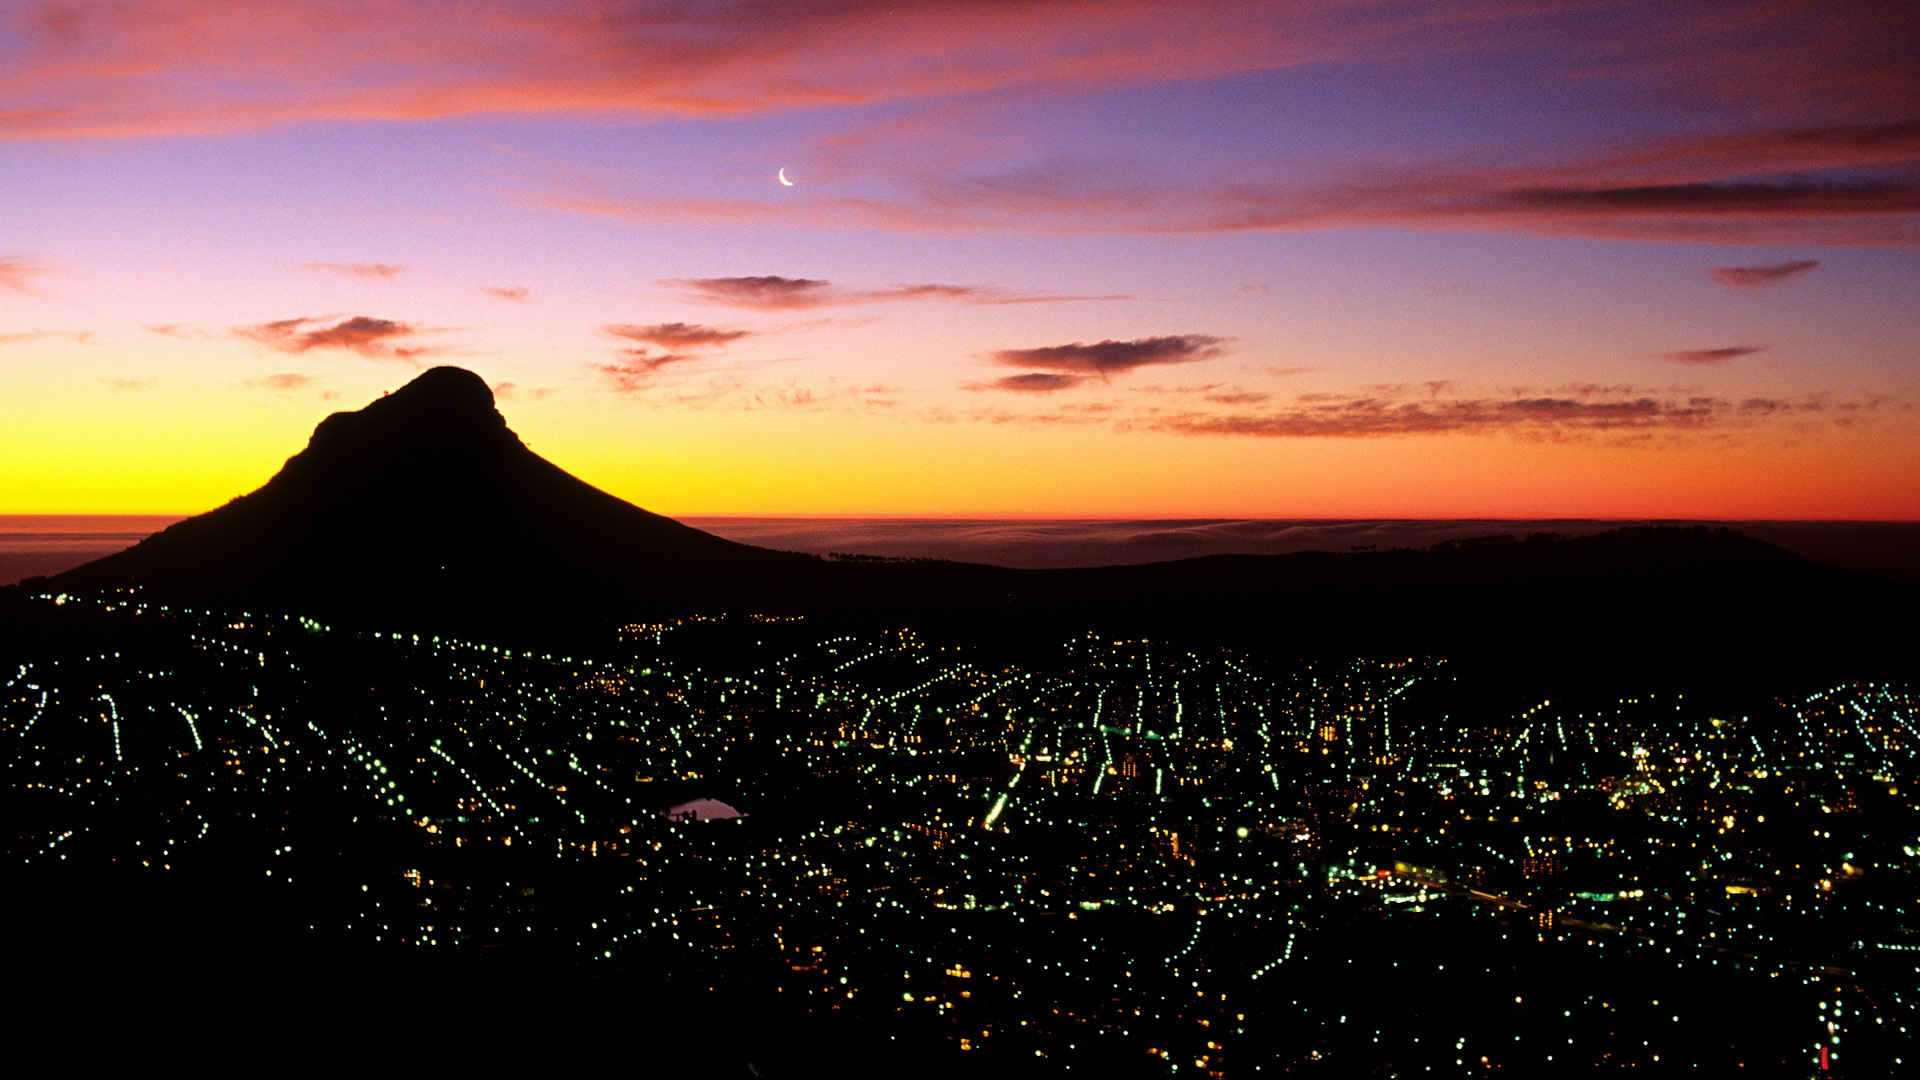 Wallpaper cape town south africa city night light mount sunrise 1920x1080